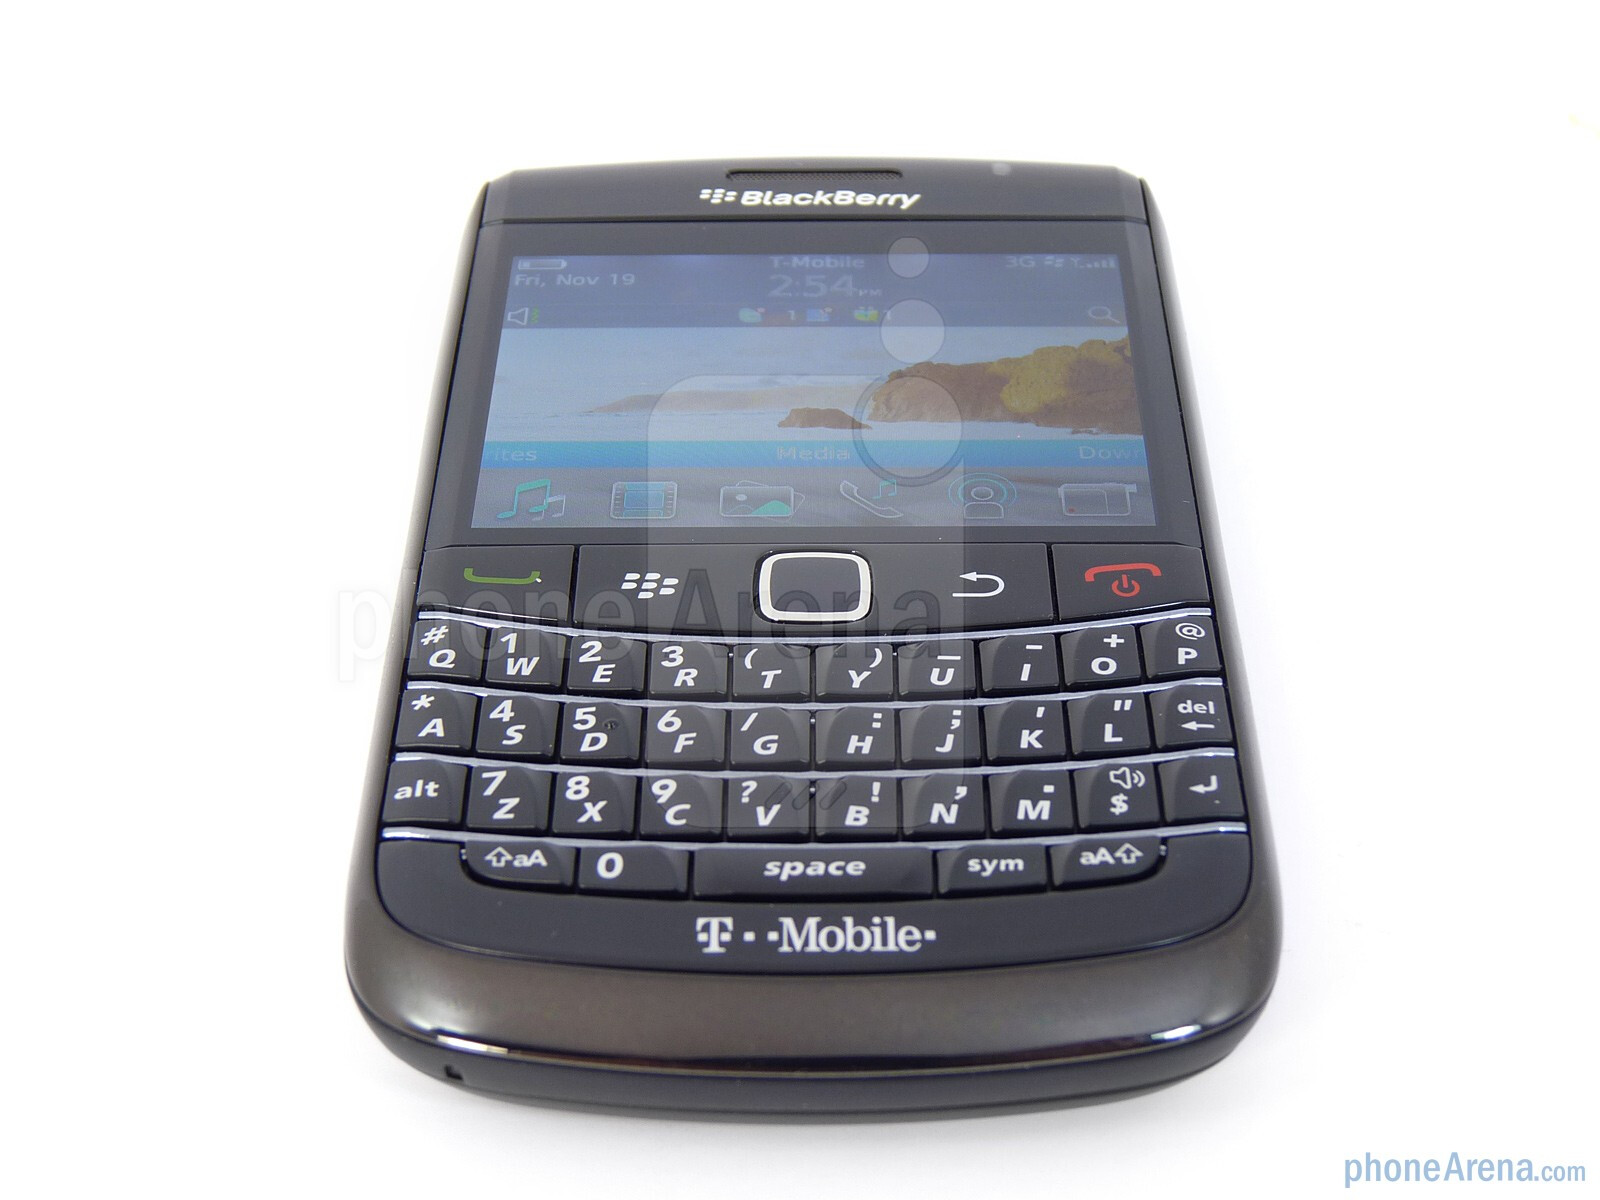 rim blackberry bold 9780 review phonearena. Black Bedroom Furniture Sets. Home Design Ideas